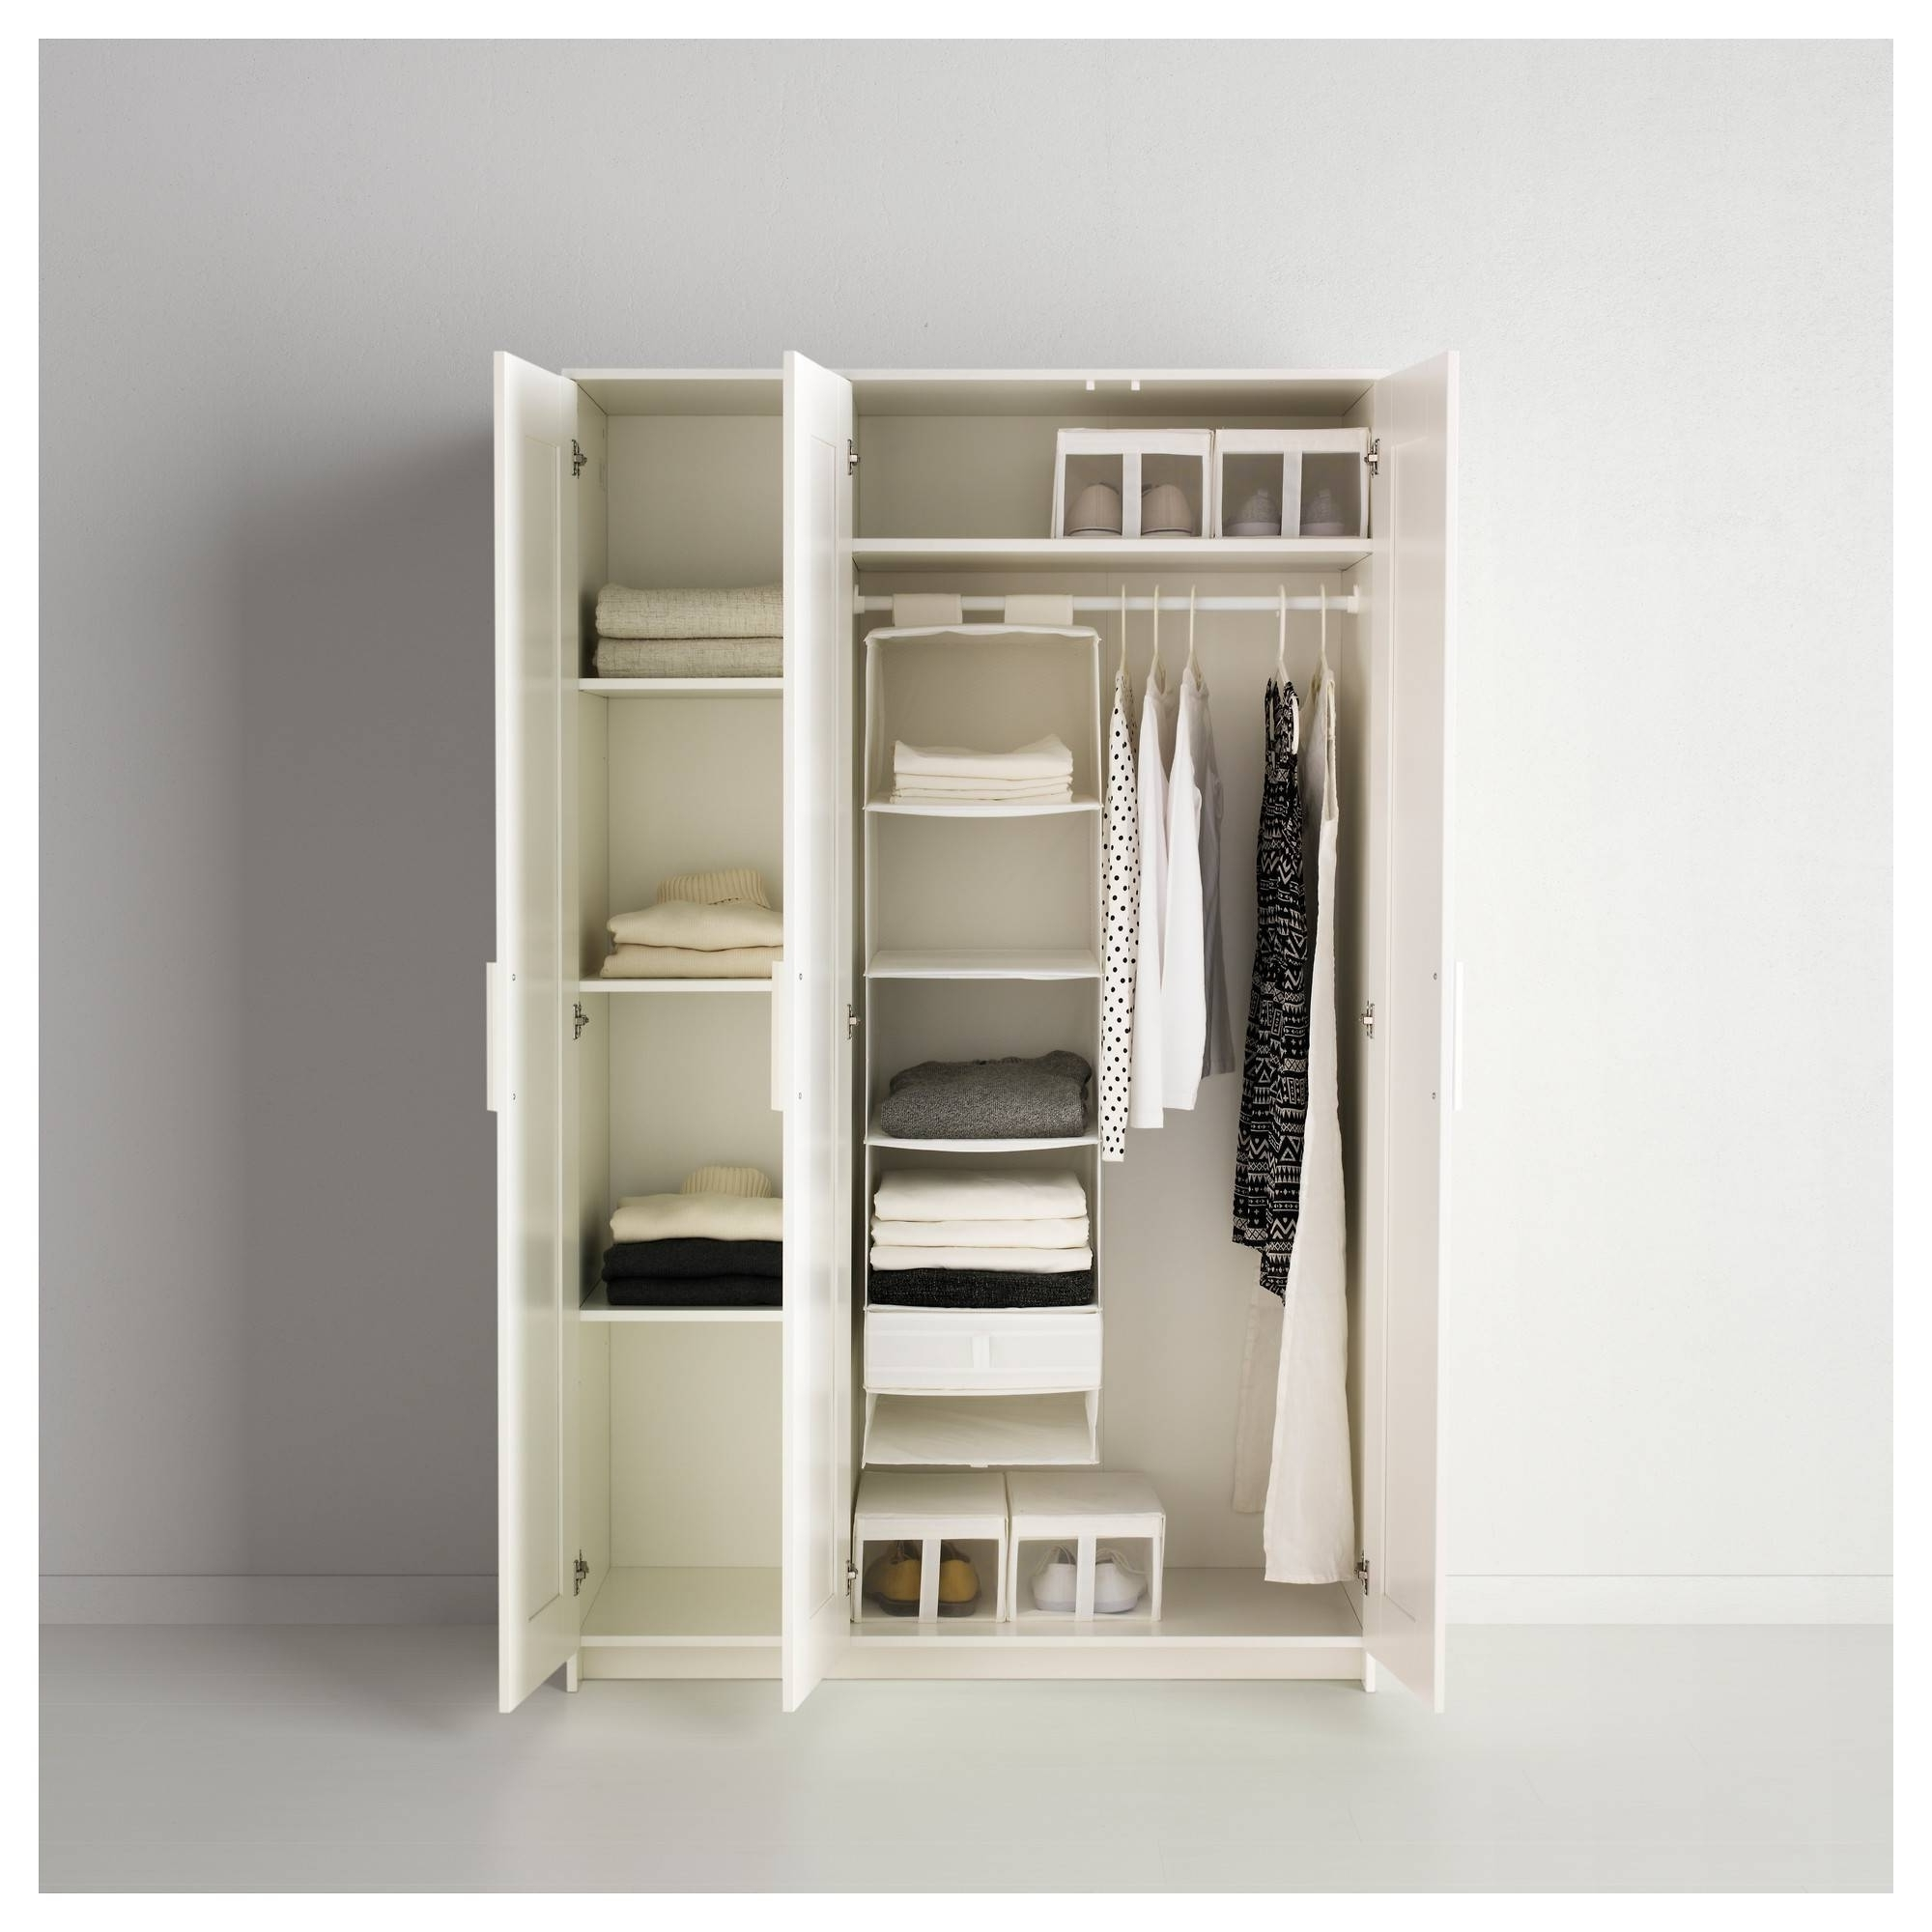 Wardrobes With Drawers And Shelves Inside Favorite Exquisite Design White Wardrobe With Drawers And Shelves Brimnes (View 12 of 15)